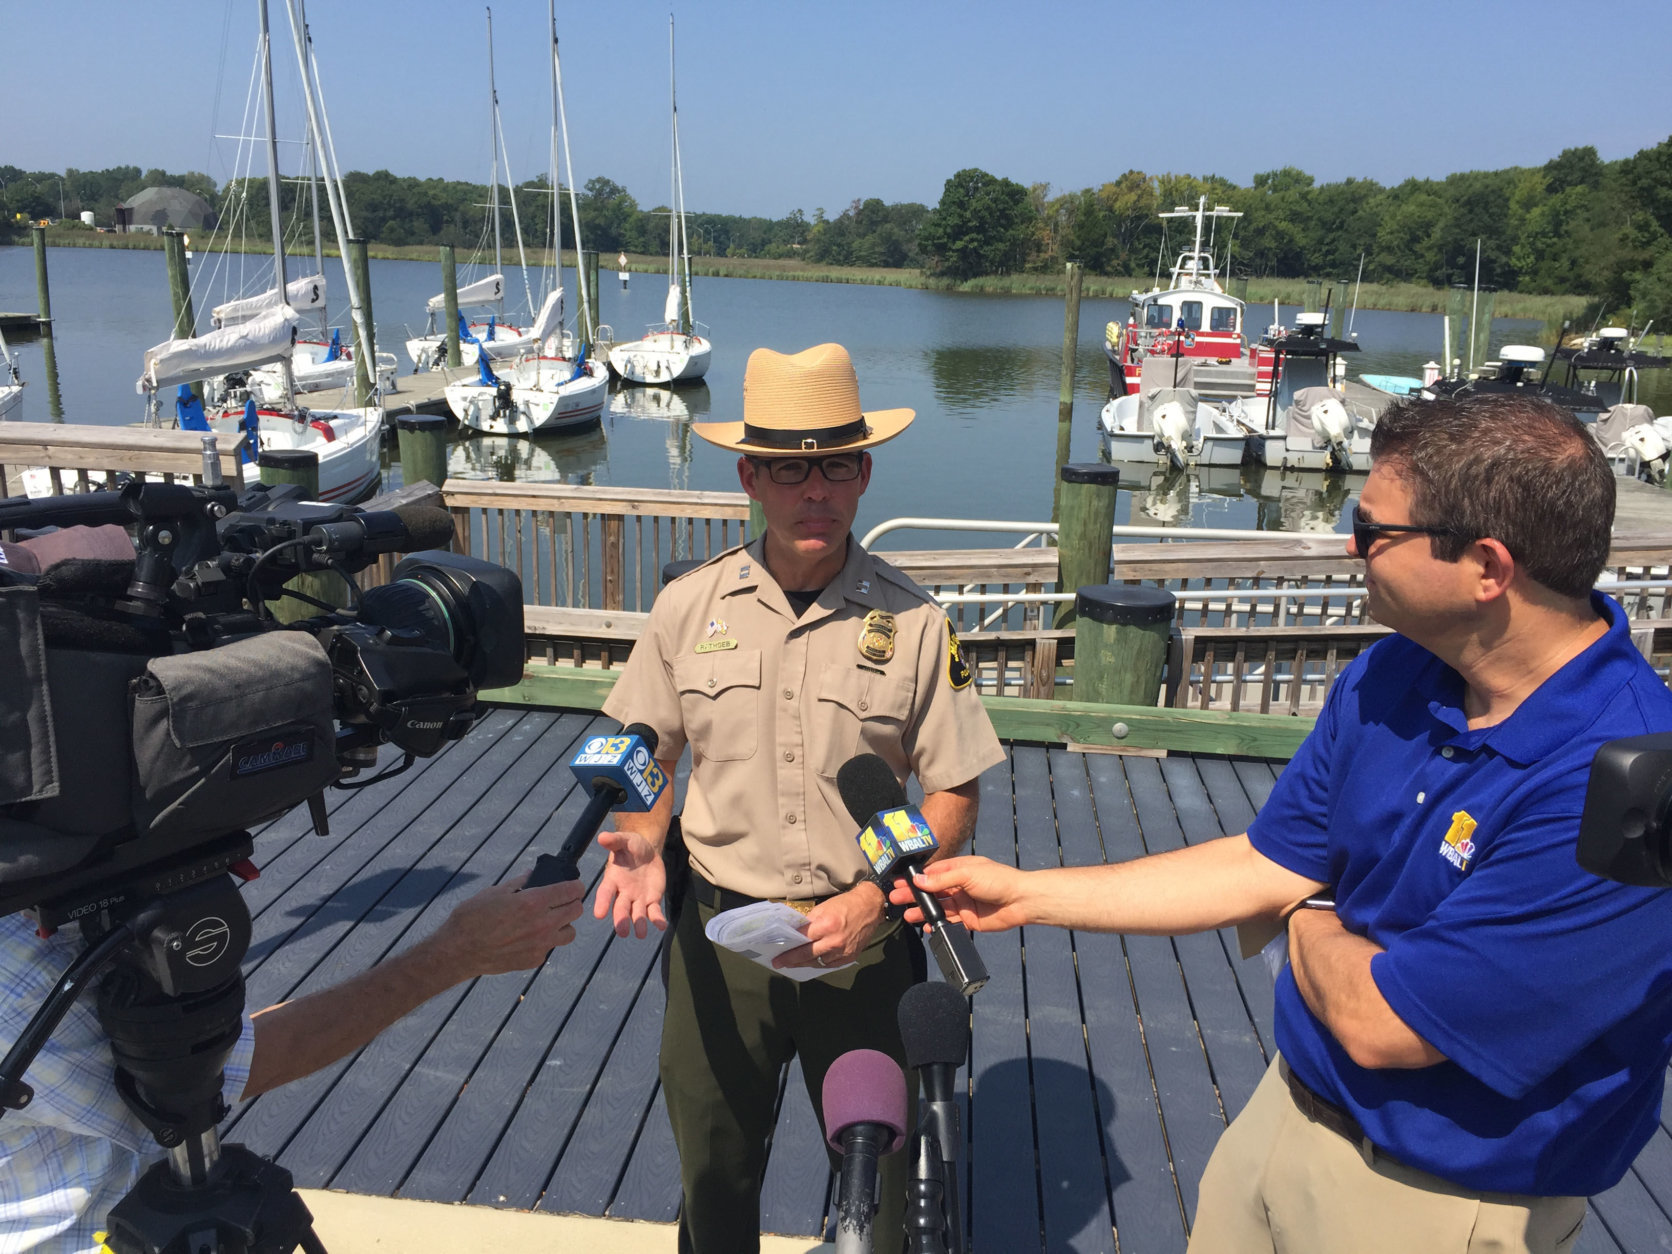 Brian Rathgeb, with Maryland Natural Resources Police, said even experienced swimmers need to be aware of strong currents when swimming in the Chesapeake Bay. (WTOP/Kristi King)